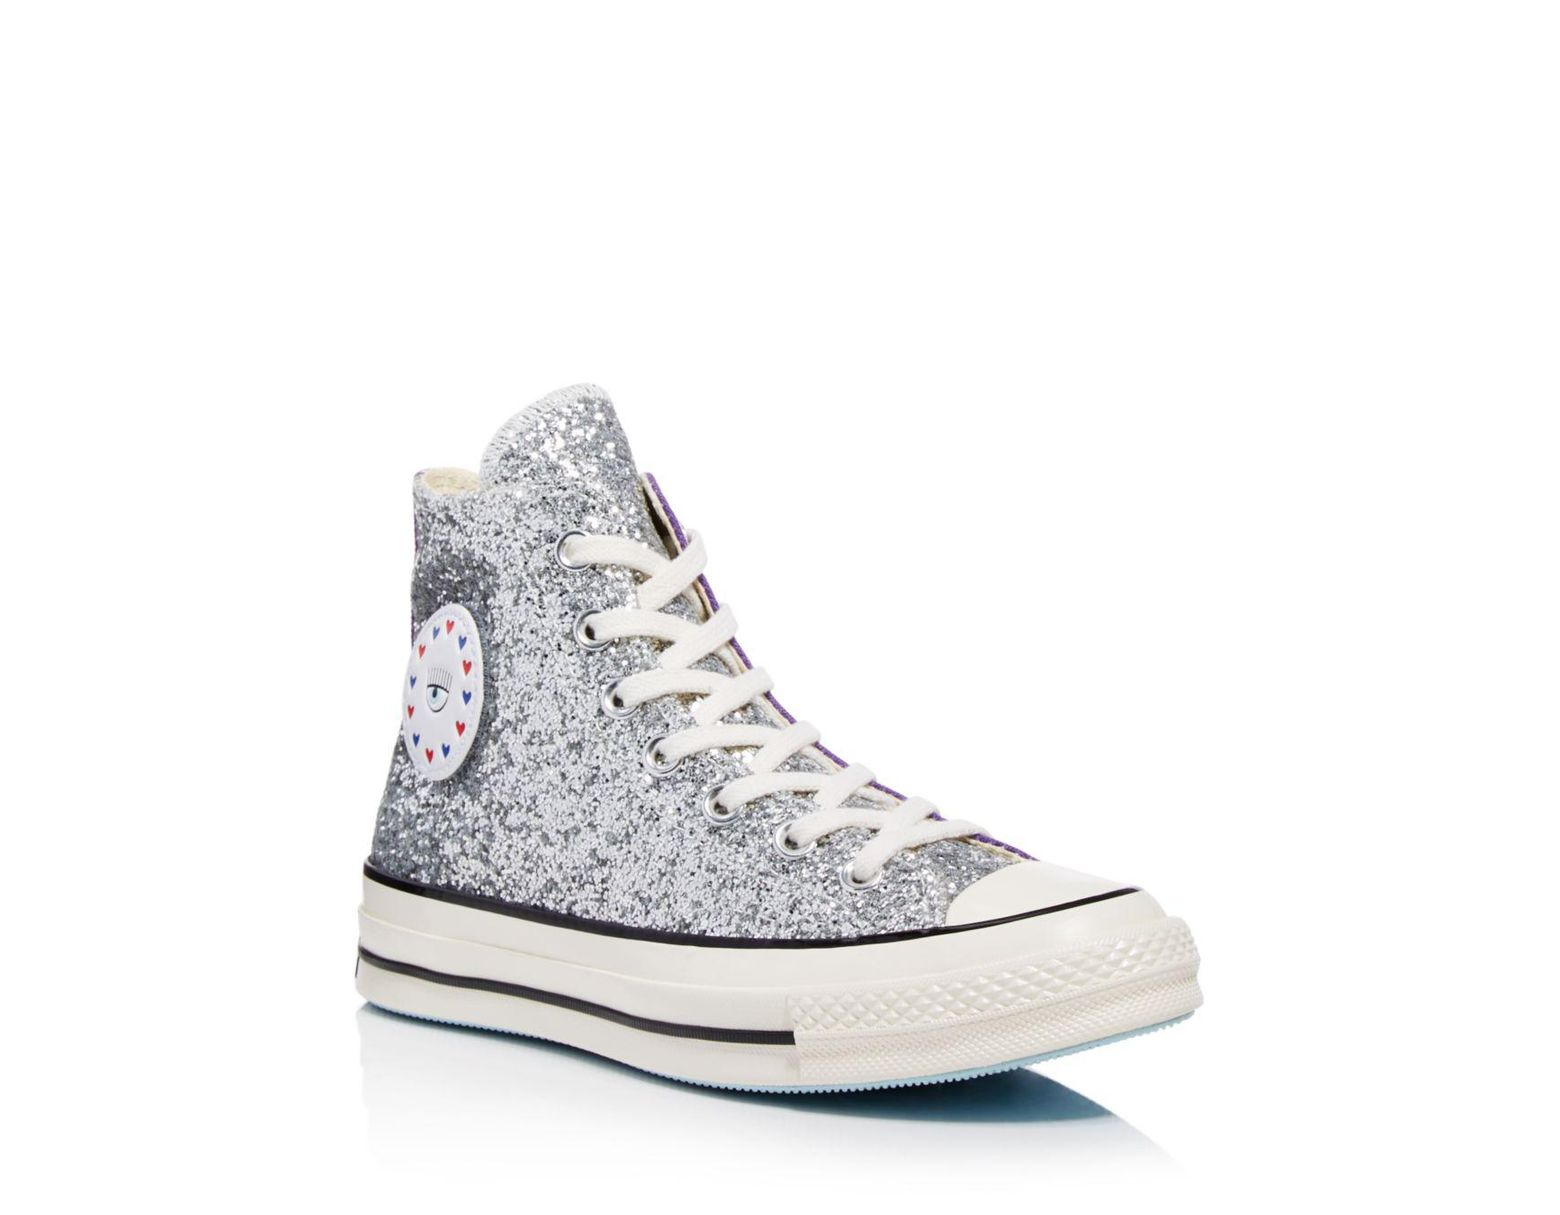 a18758cdecb4 Converse X Chiara Ferragni Women's Chuck Taylor Tillands Glitter High Top  Sneakers in Purple - Lyst